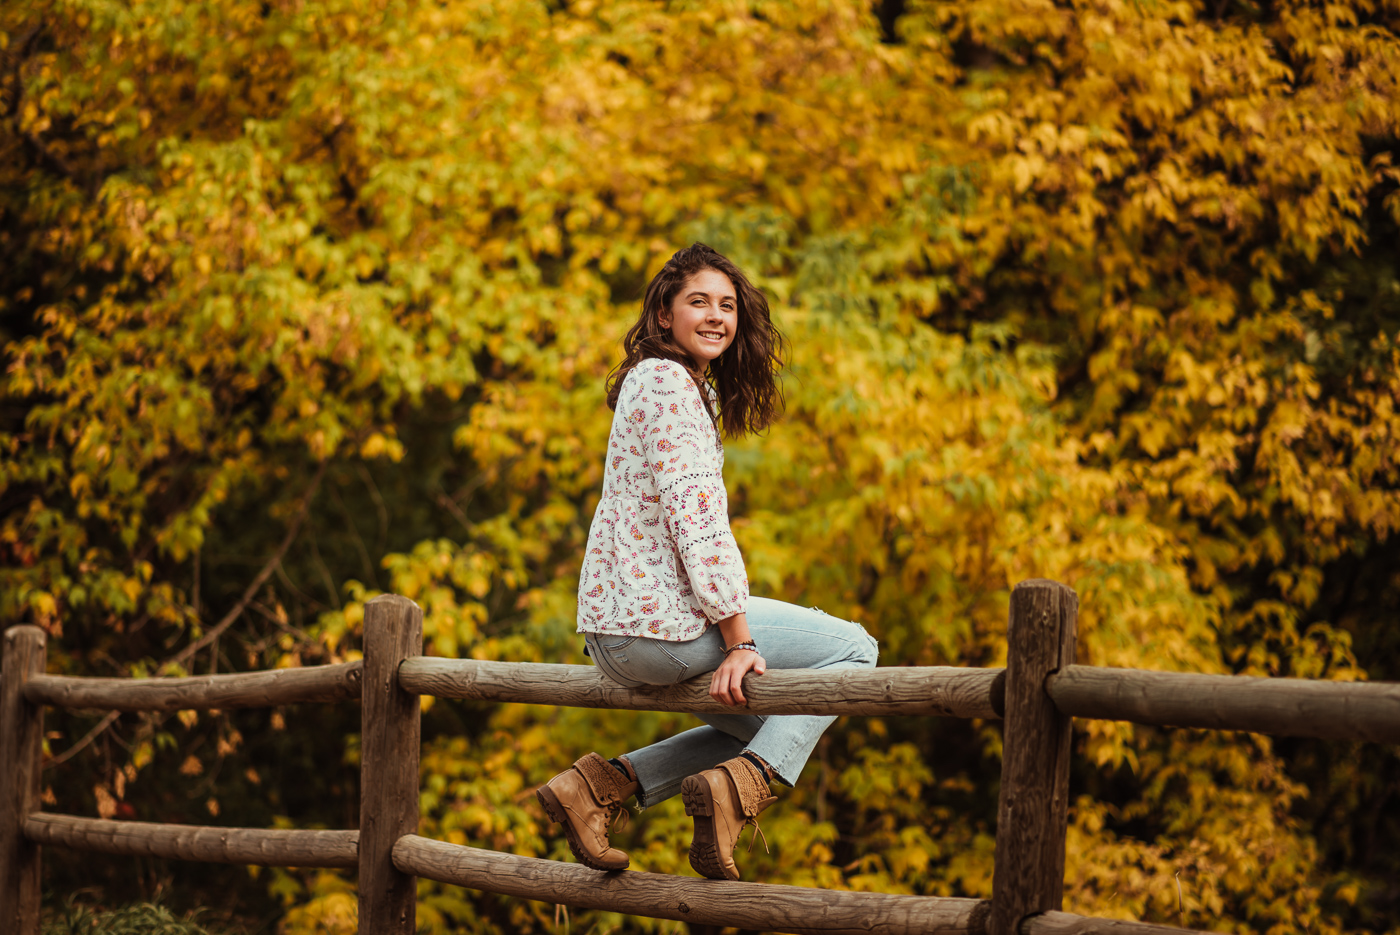 PHOCO Photography Fort Collins Colorado Senior Portraits Fall Gateway Natural Area Yellow Fedora Autumn River-6.jpg